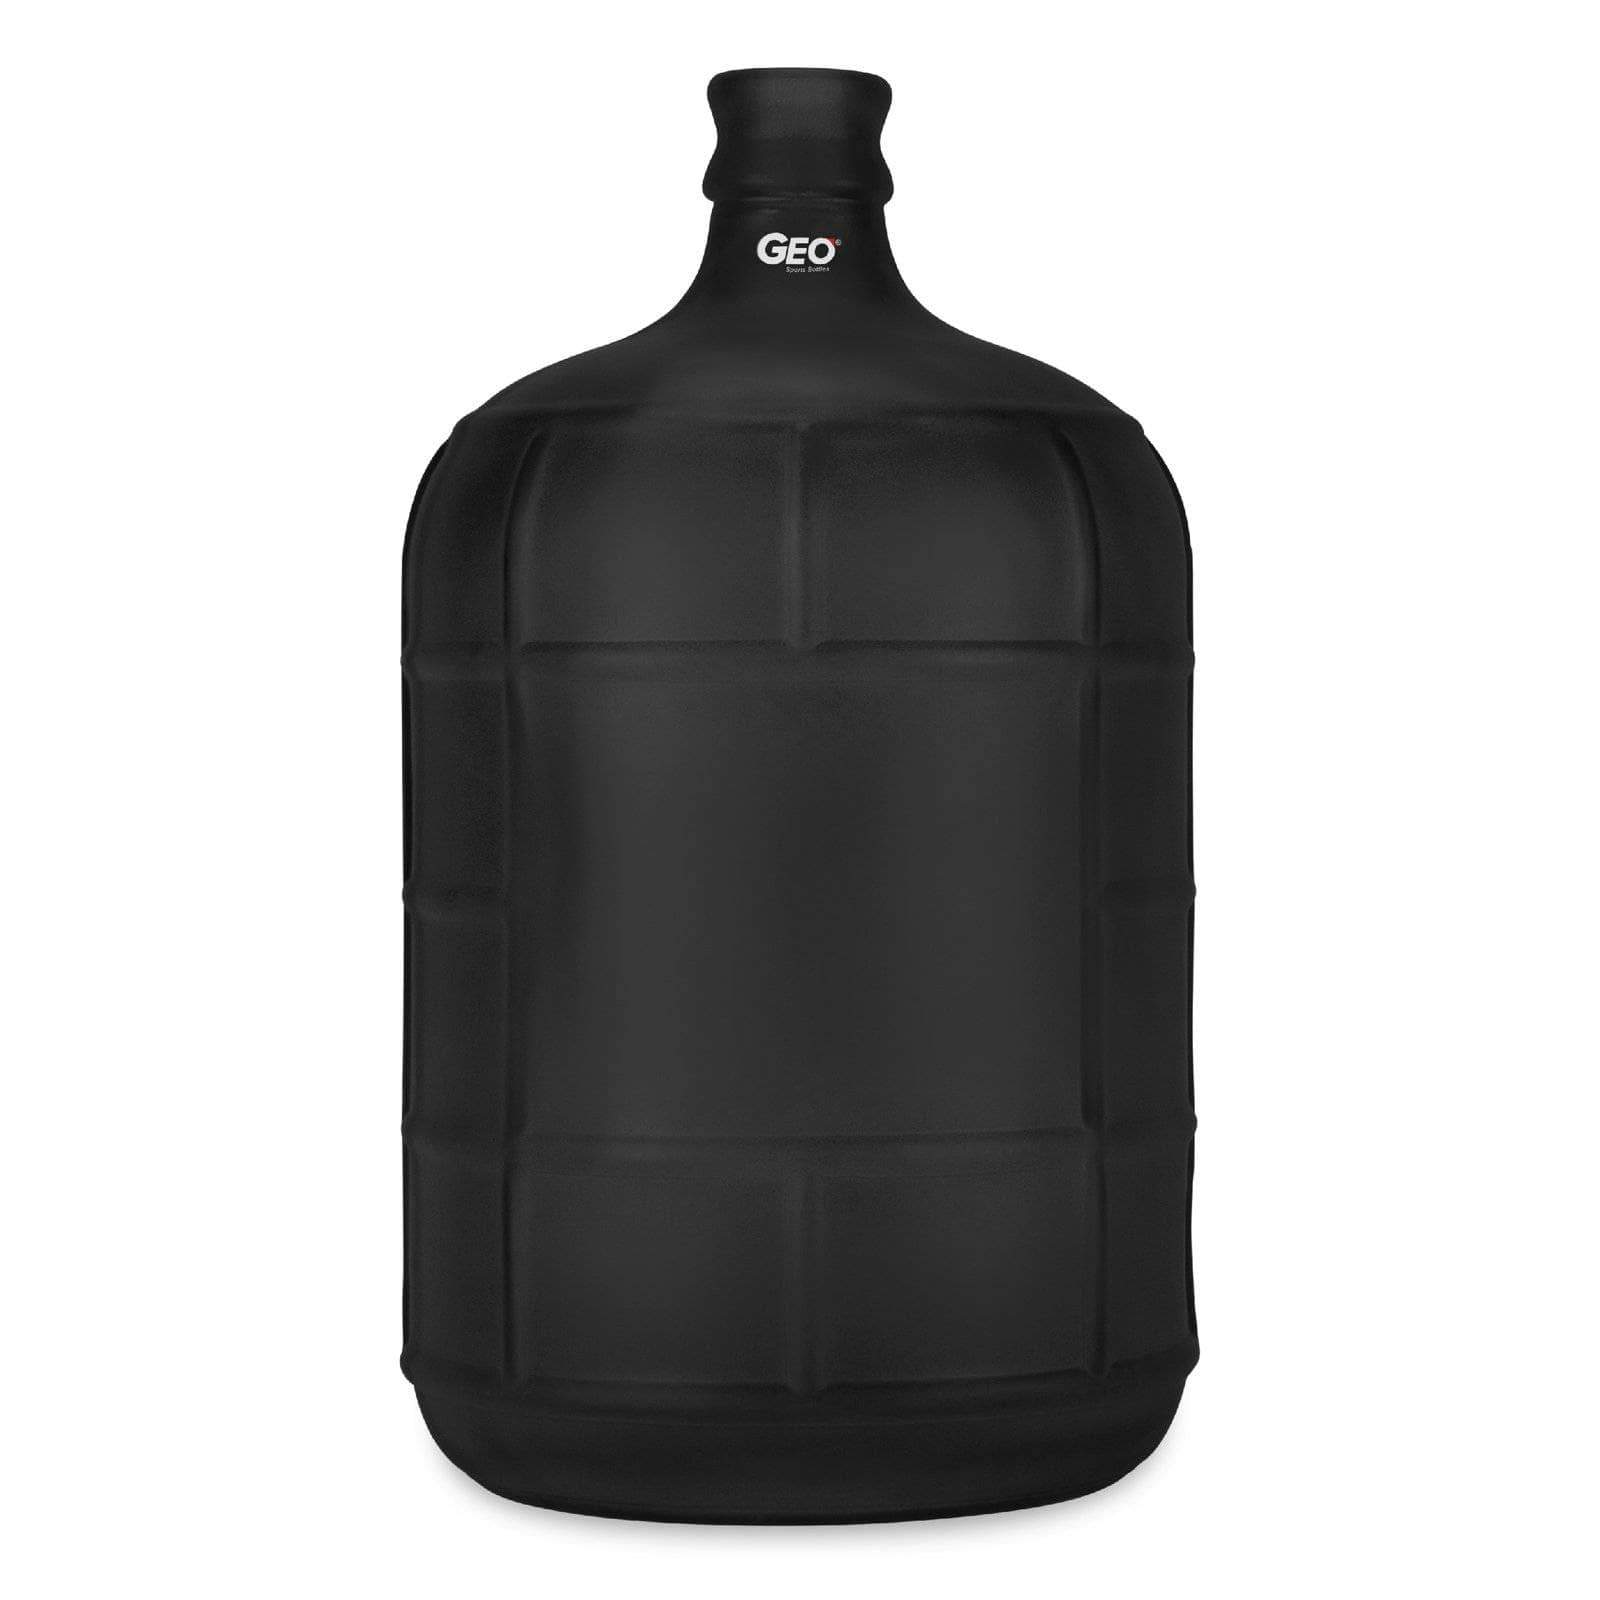 Geo Bottles Glass Bottles Black 3 Gallon Round Frosted Glass Carboy w/55mm Crown Top